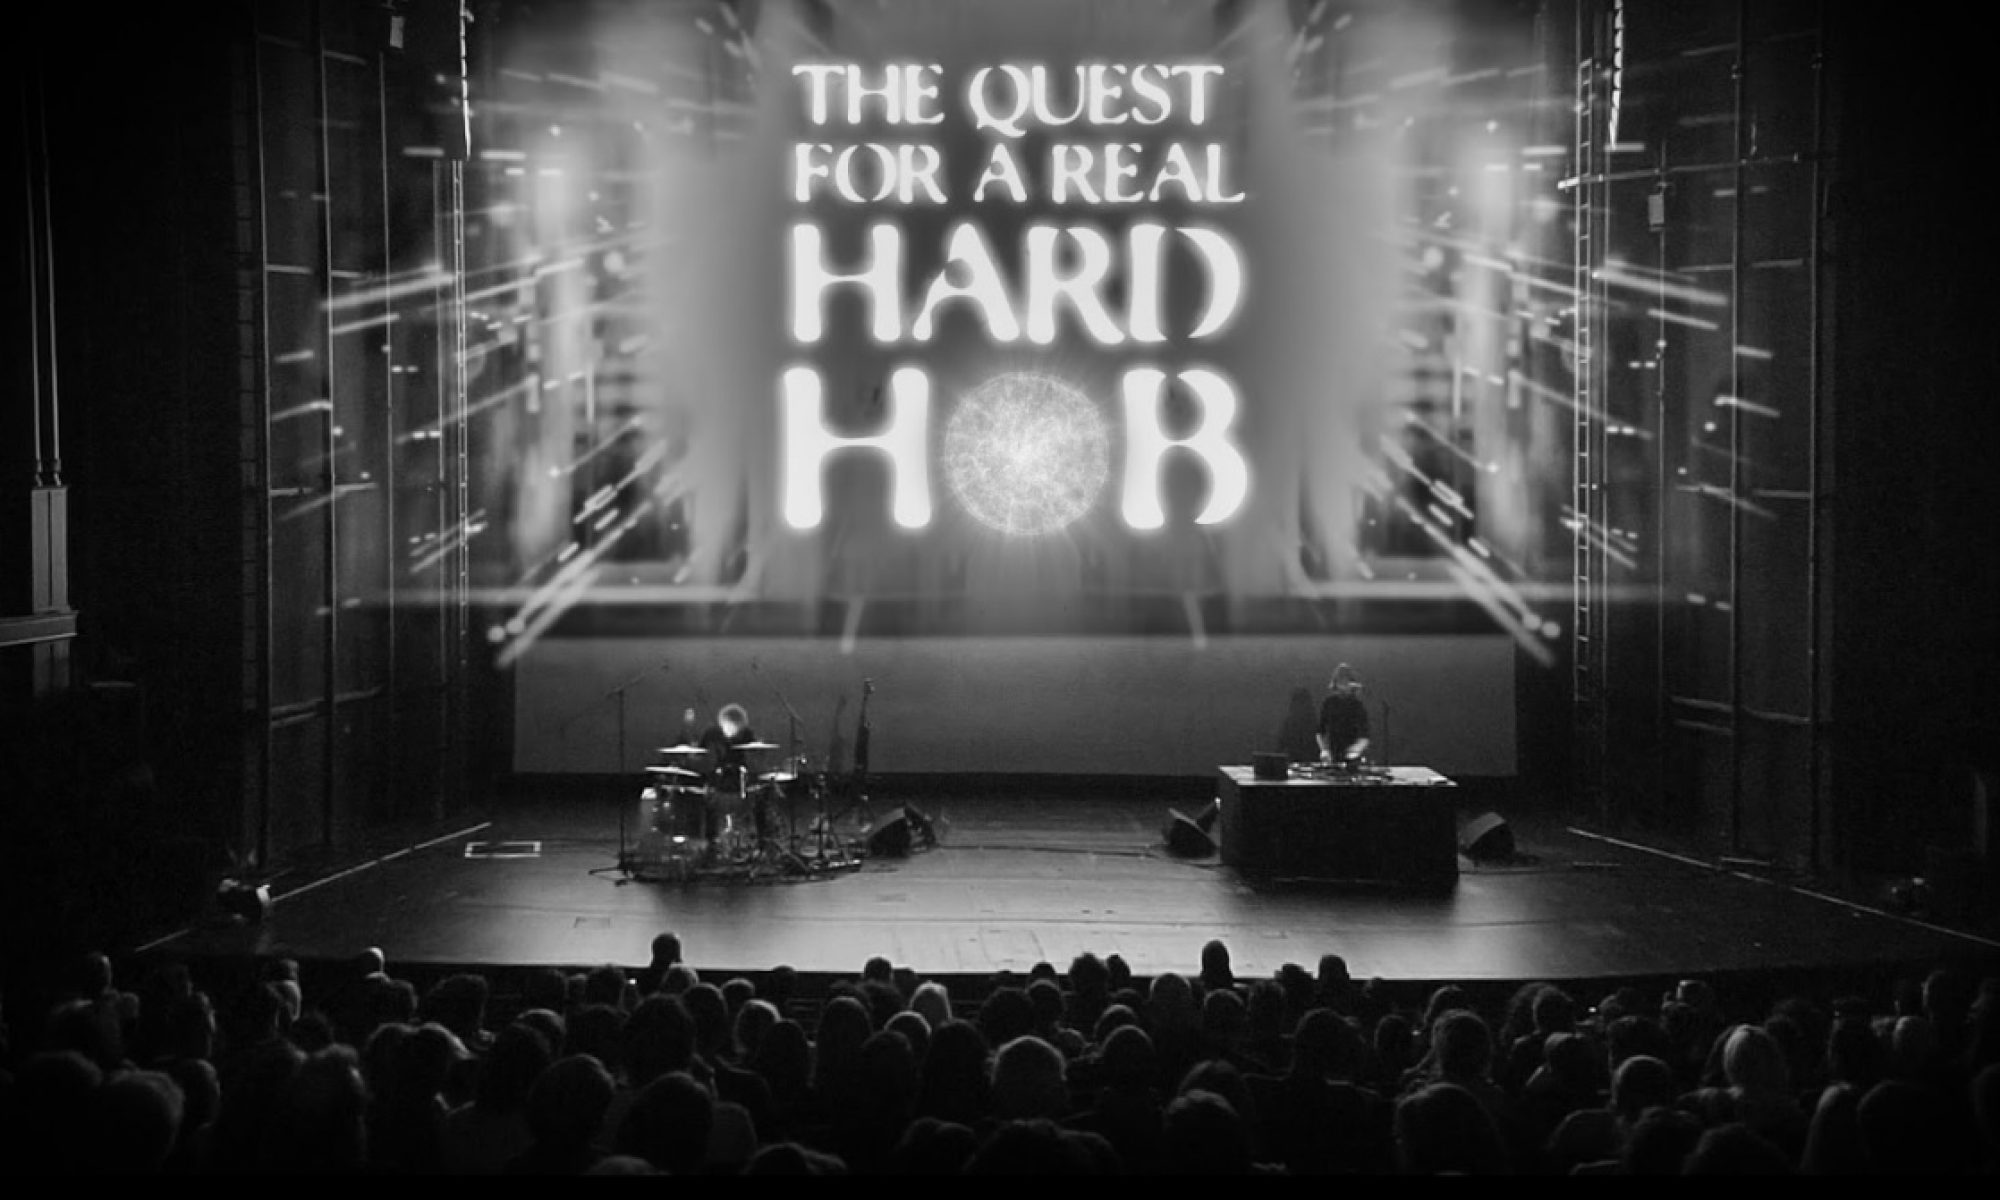 The Quest For A Real Hard Hob